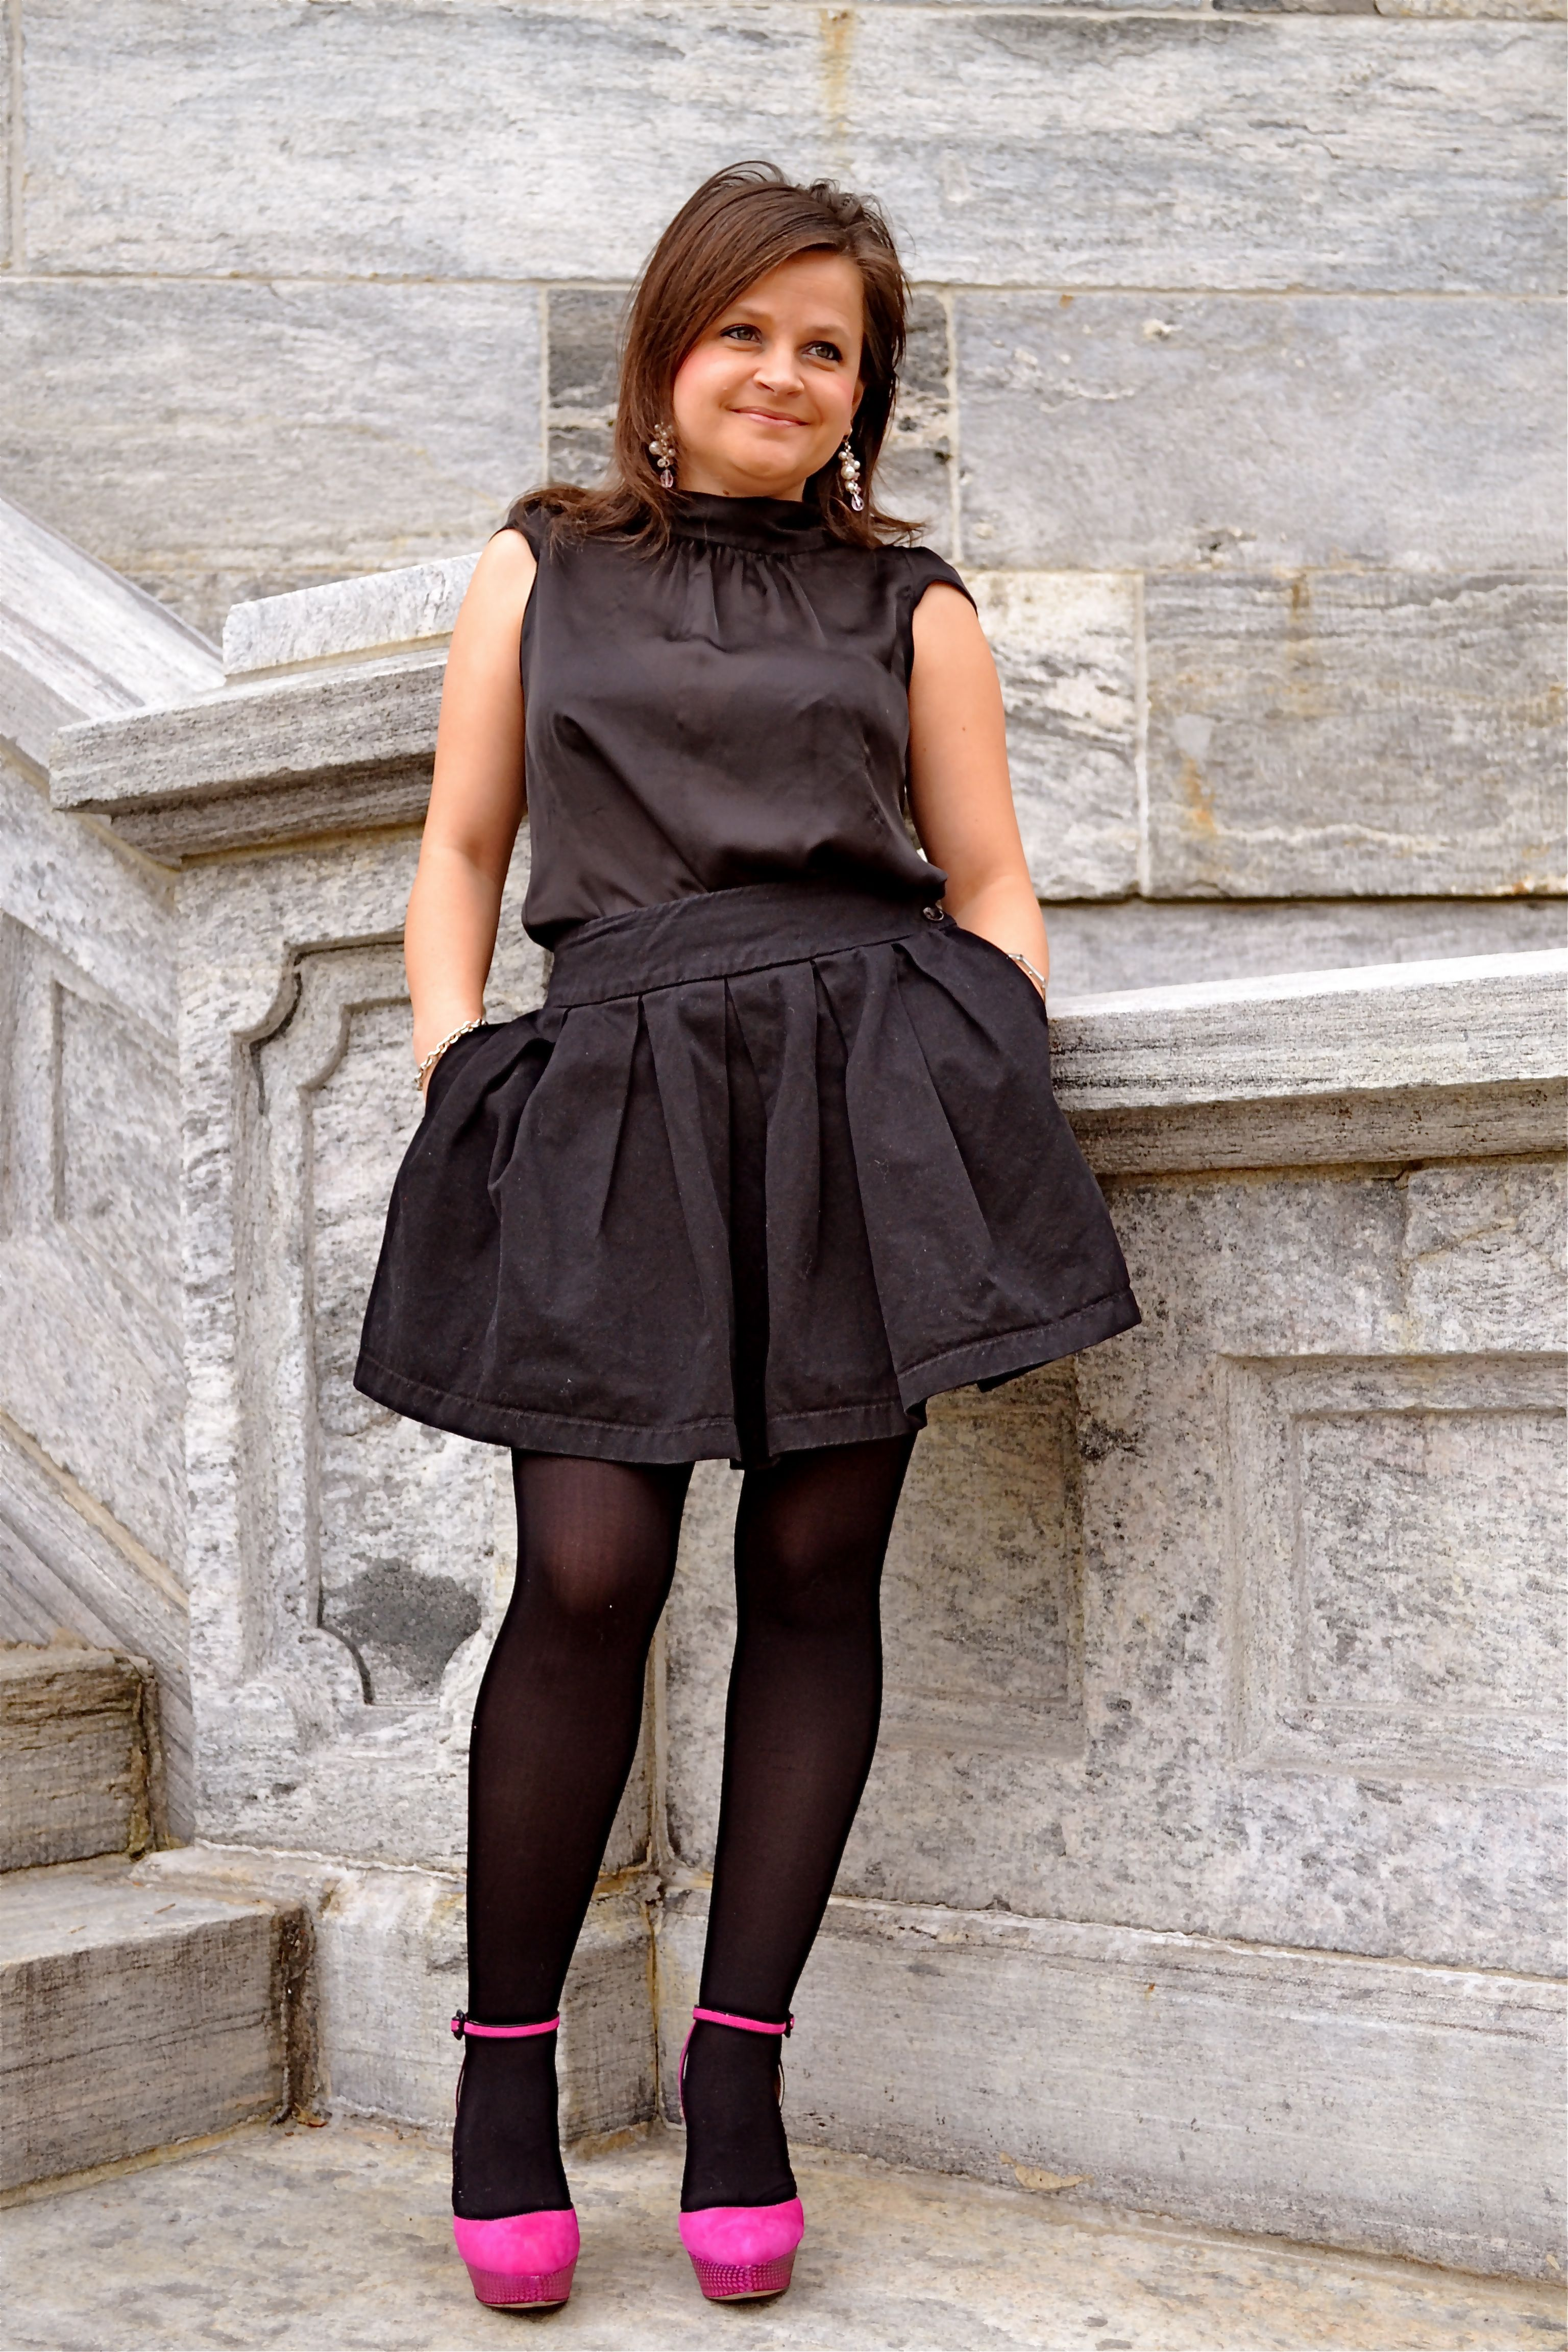 shoes Black pantyhose and